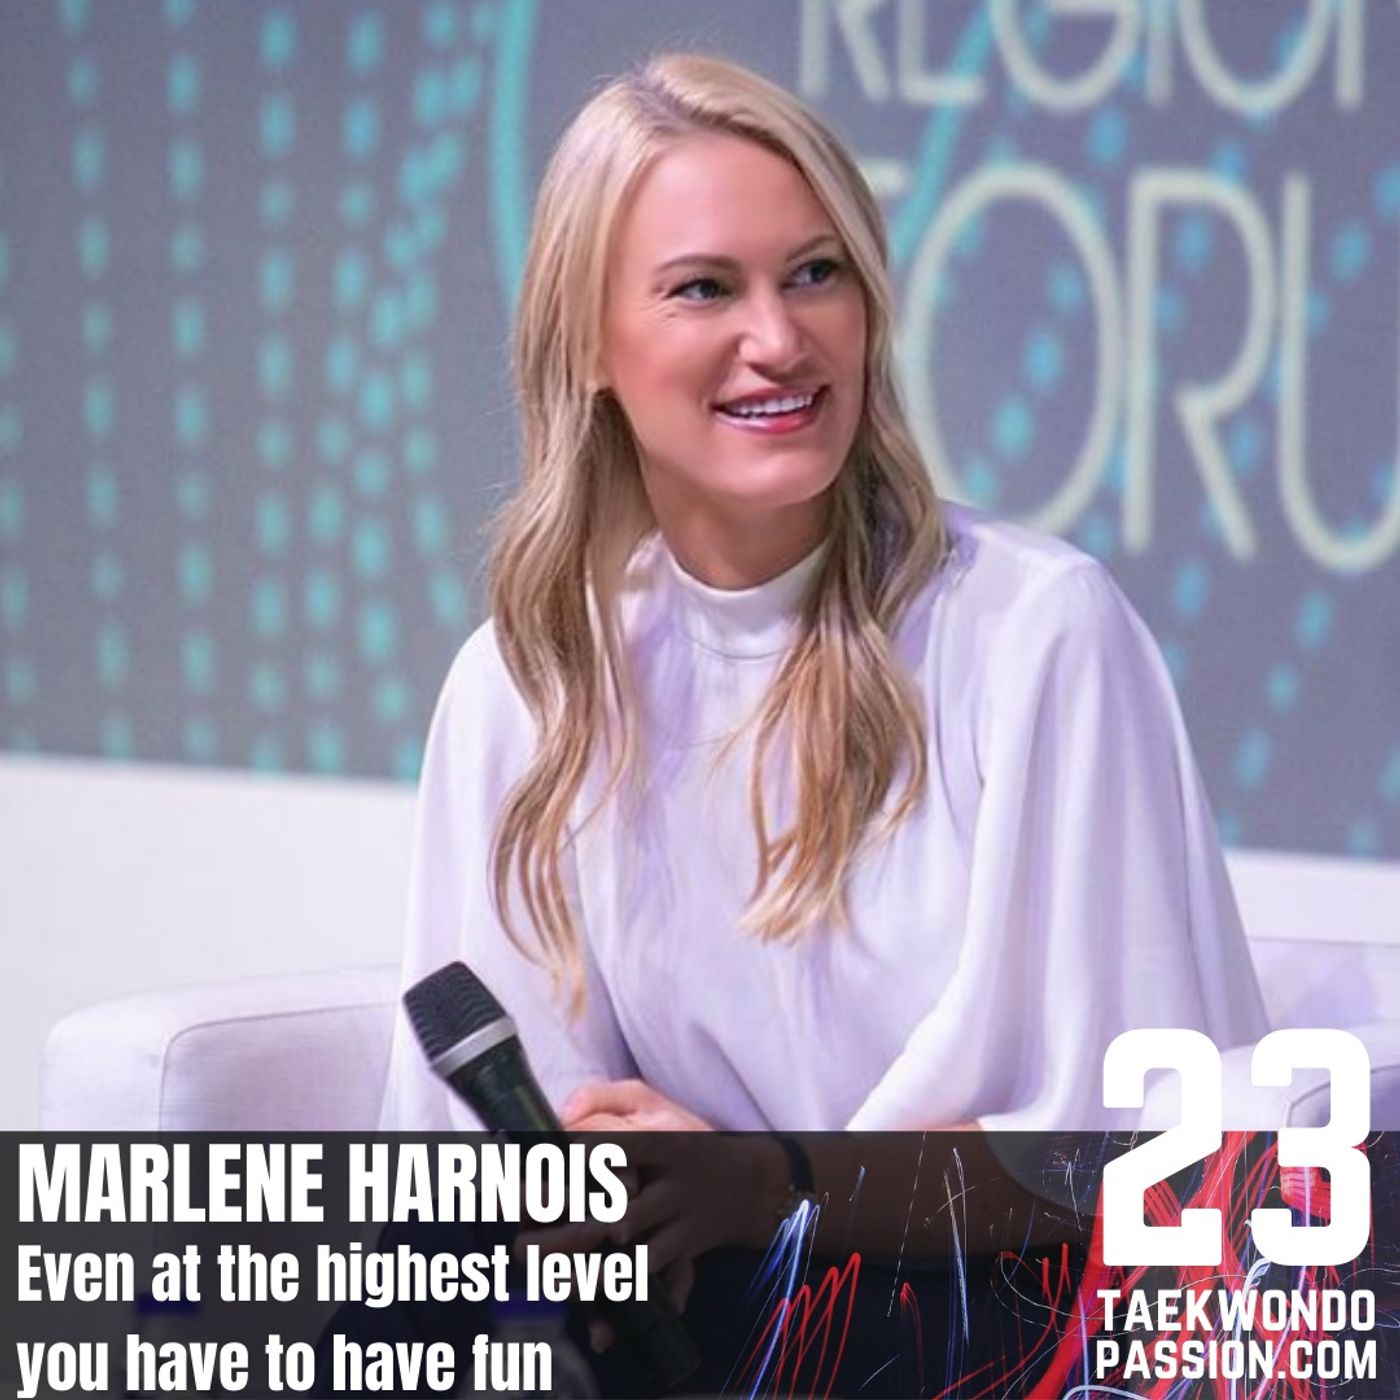 Marlene Harnois: Even at the highest level you have to have fun